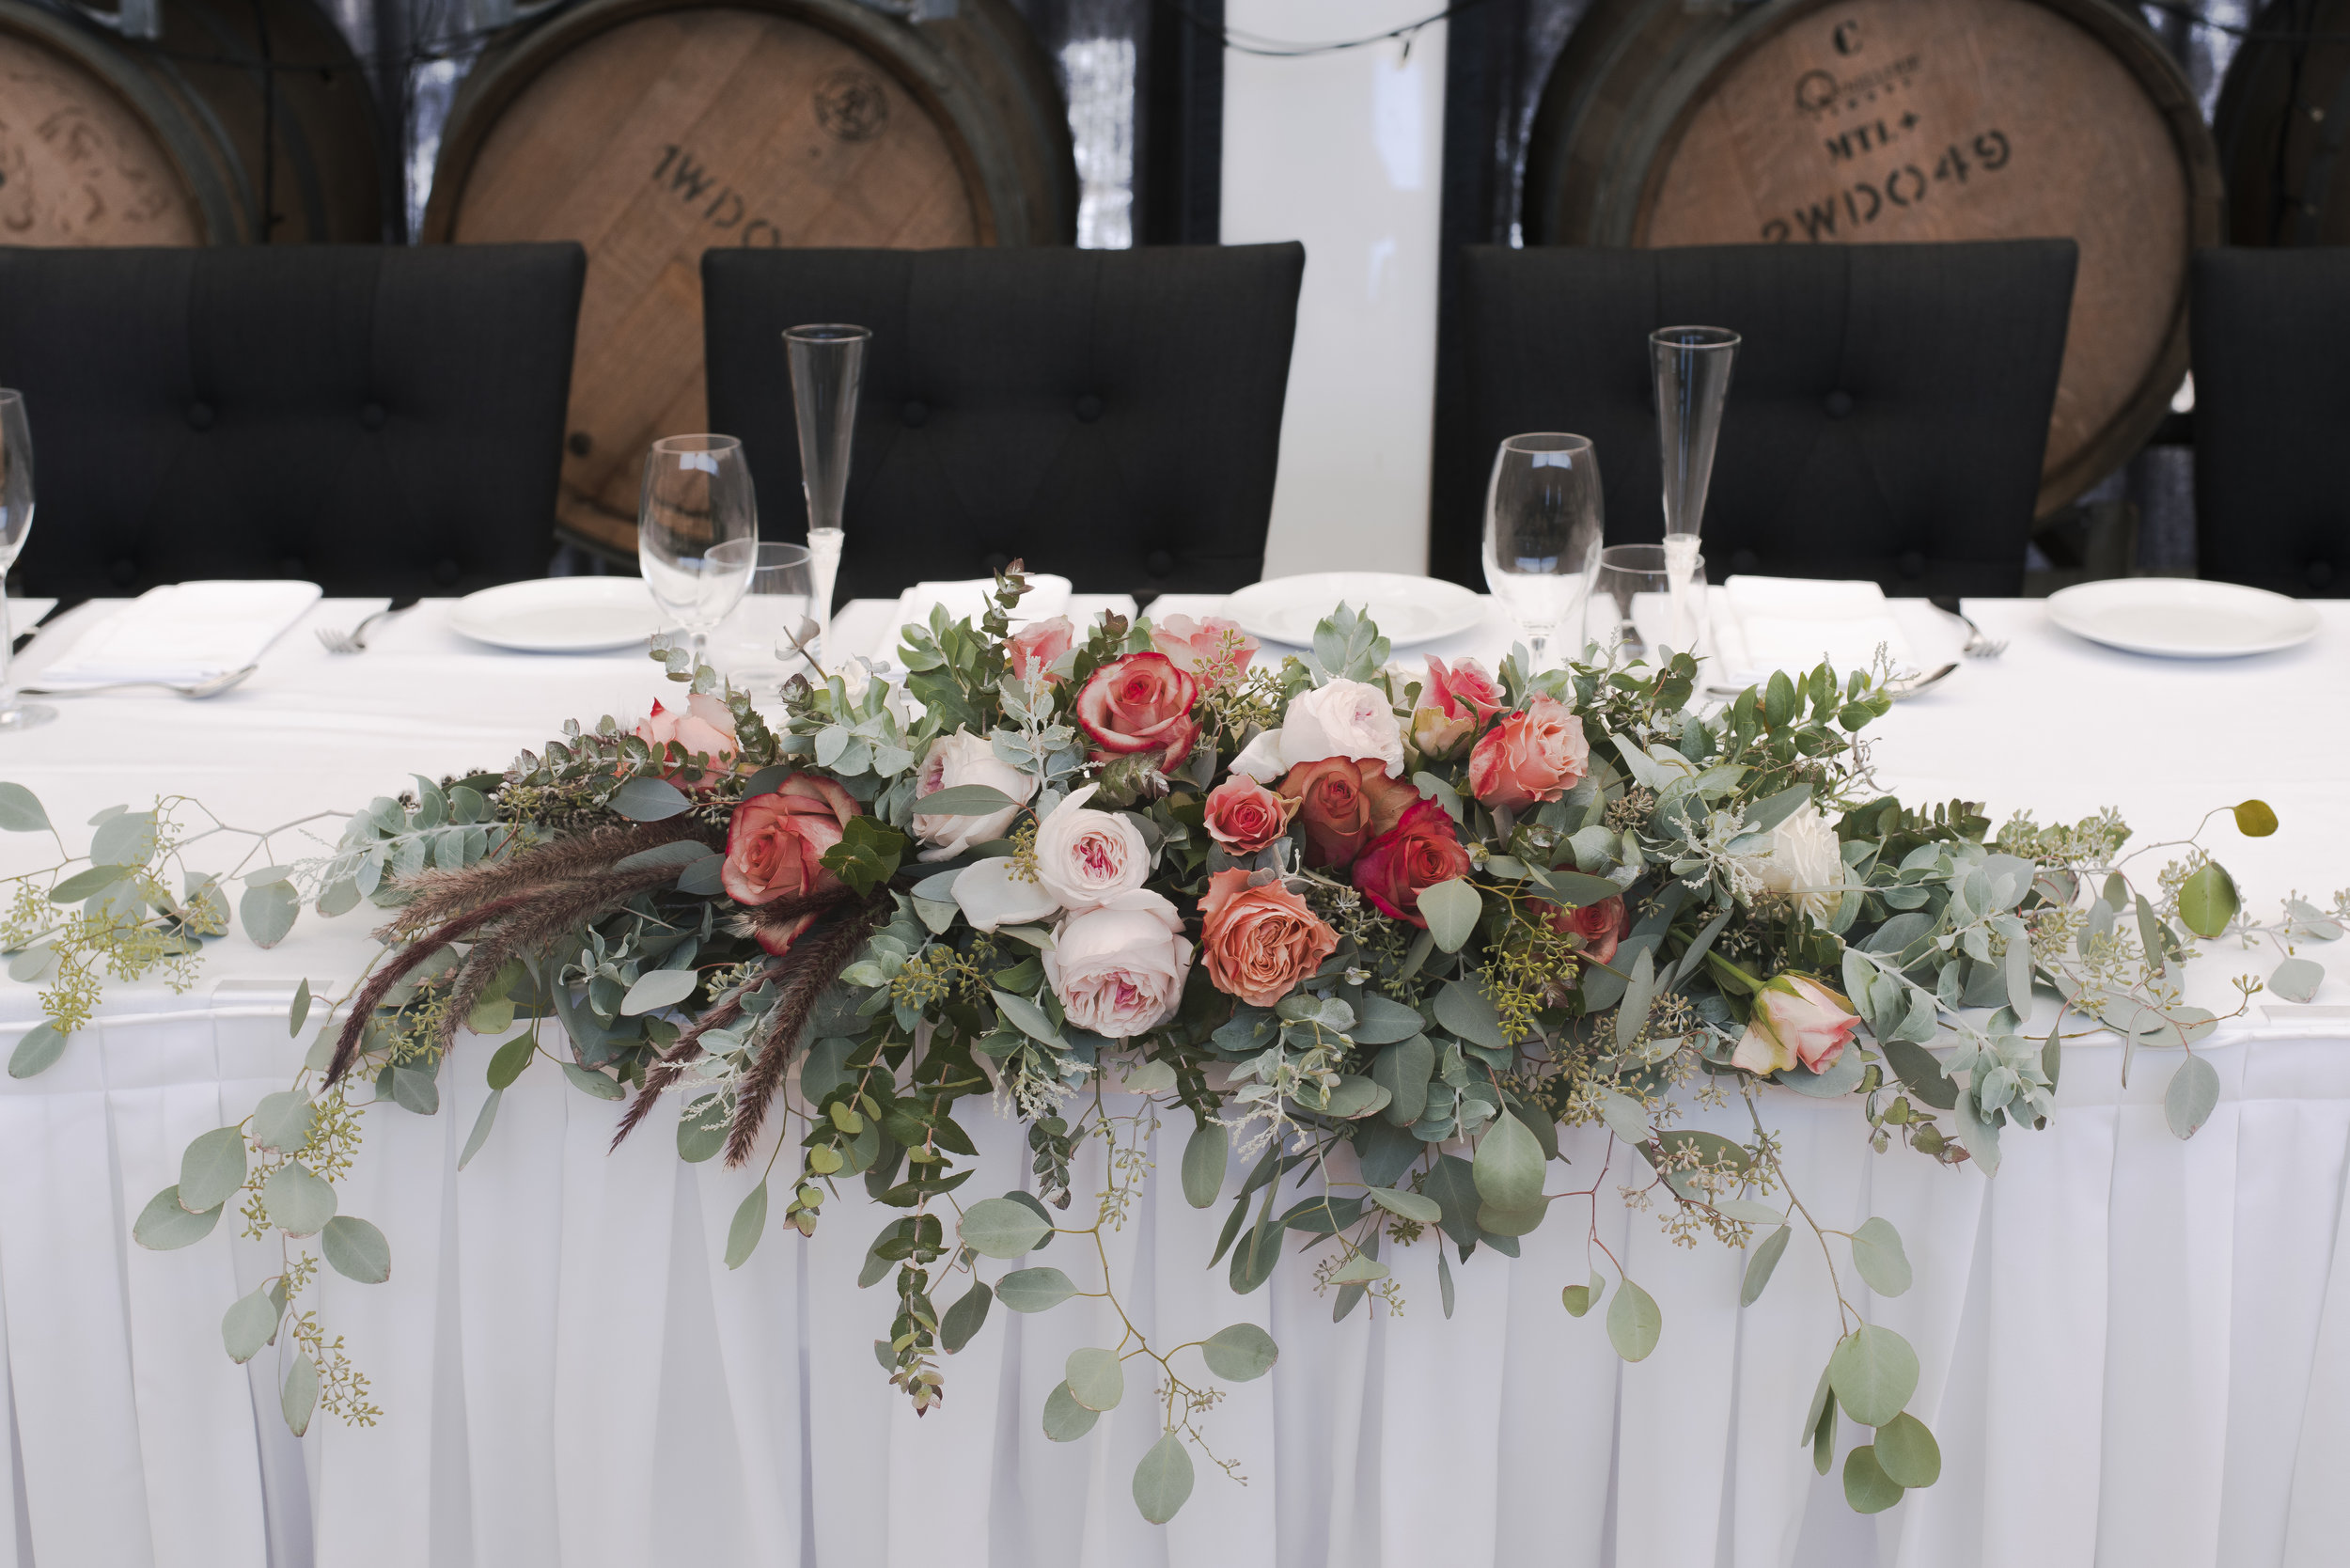 Contemporary style long and low table arrangement with blush David Austin roses, peach roses, native foliage and native grass.